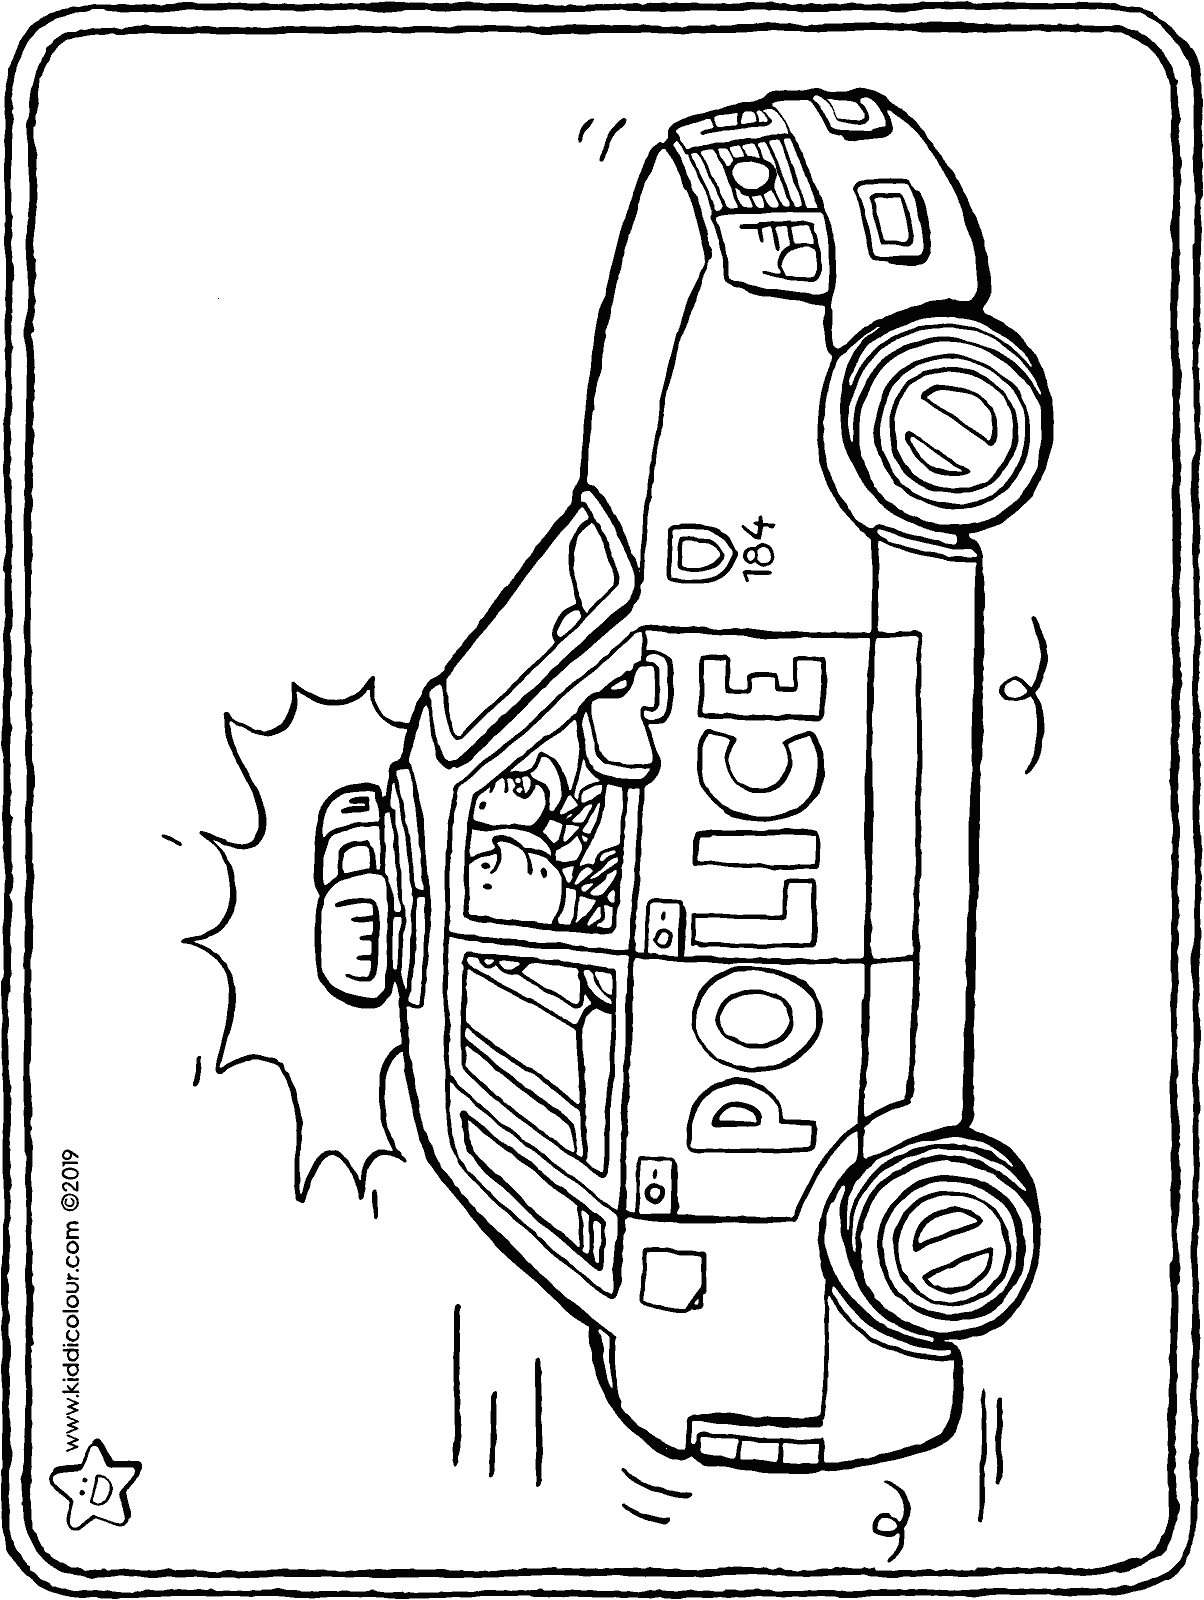 police car colouring page drawing picture 01H